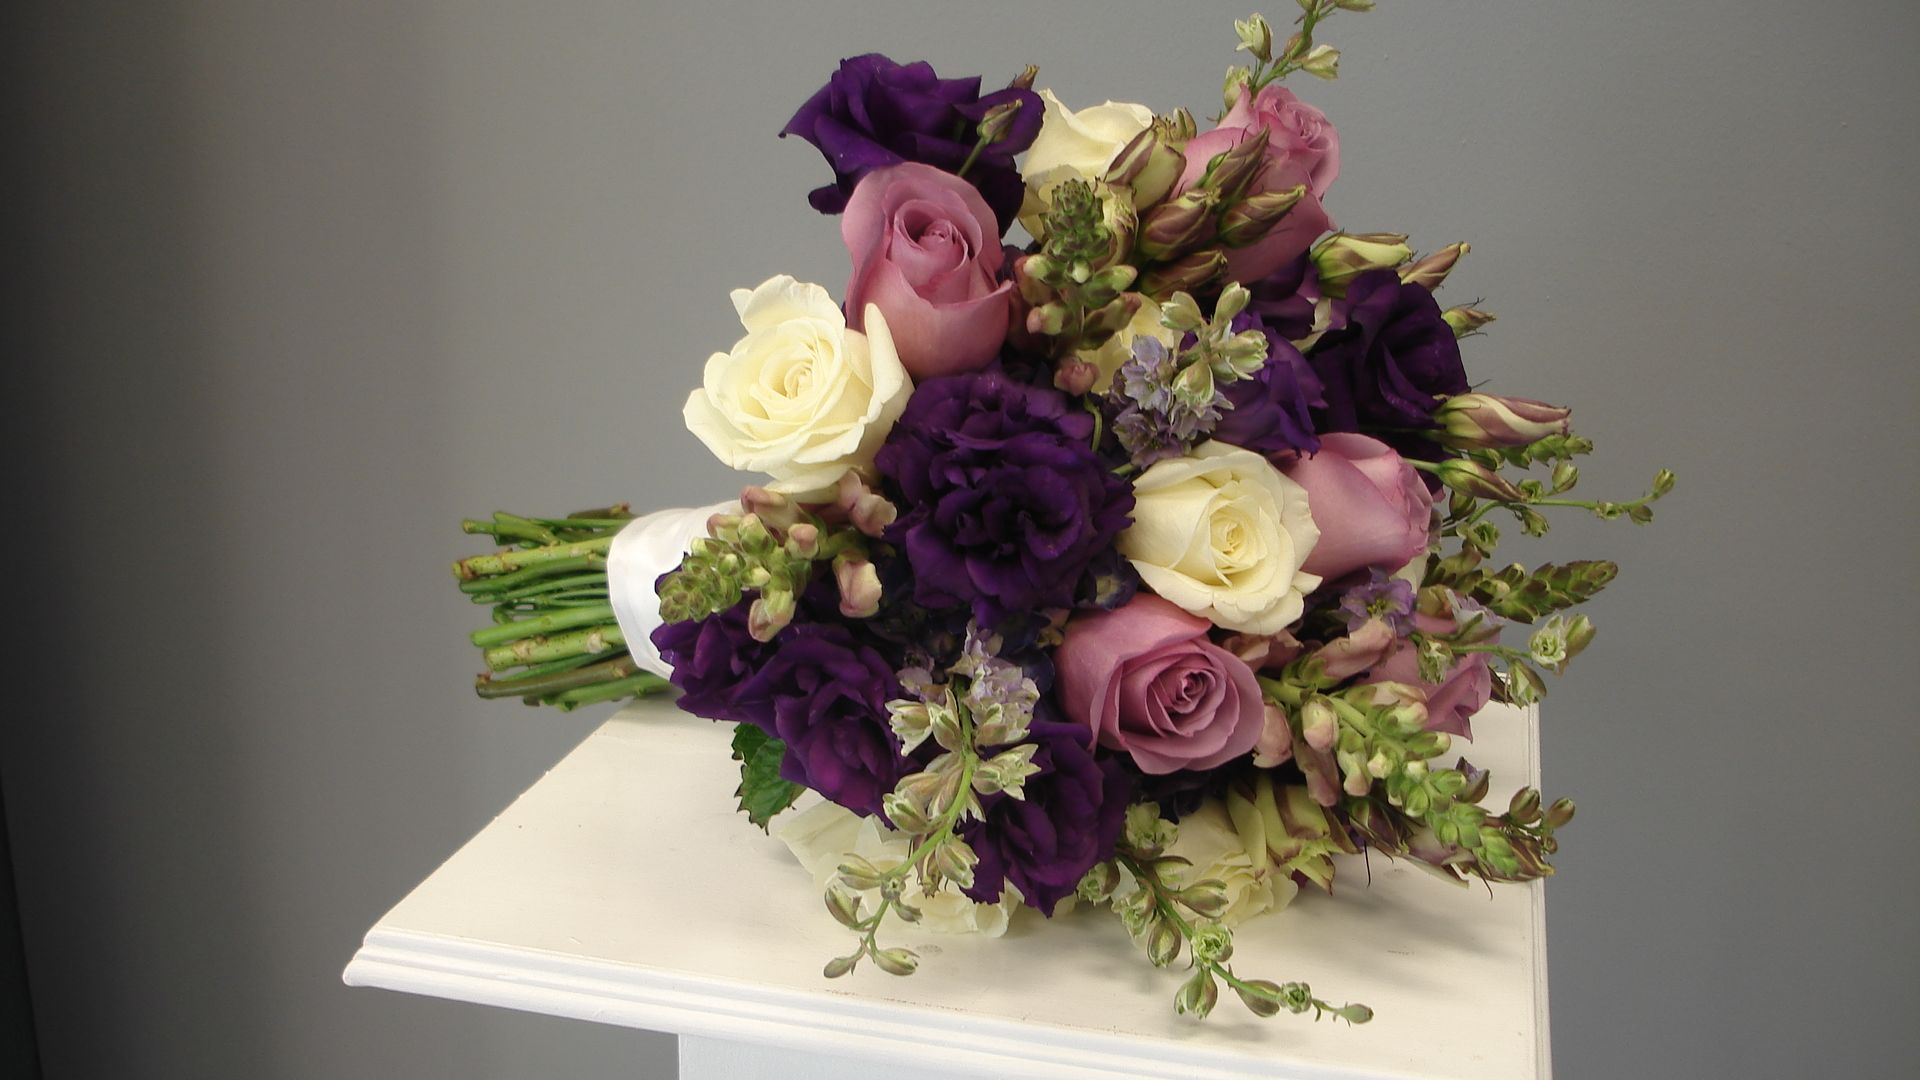 Roses Lisianthus Shades Of Purple Bridal Bouquet Flowers Of The